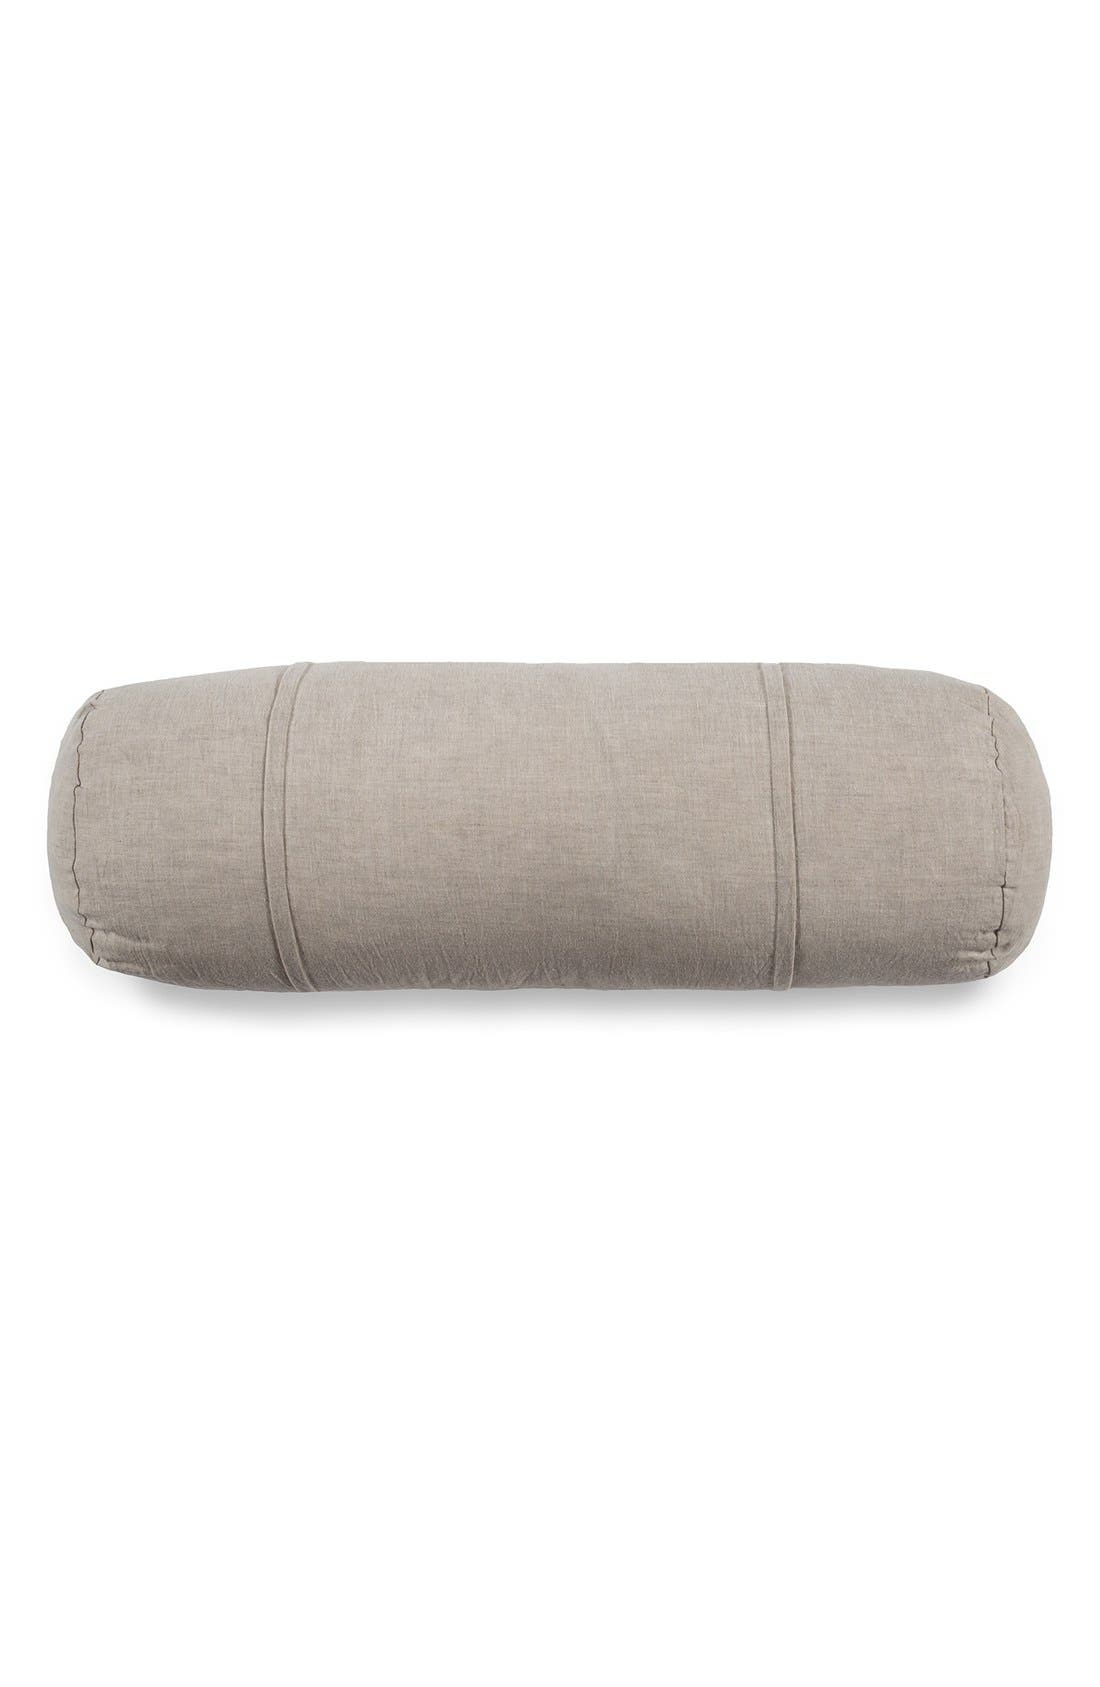 POM POM AT HOME Pom Pom at Home 'Louwie' Bolster